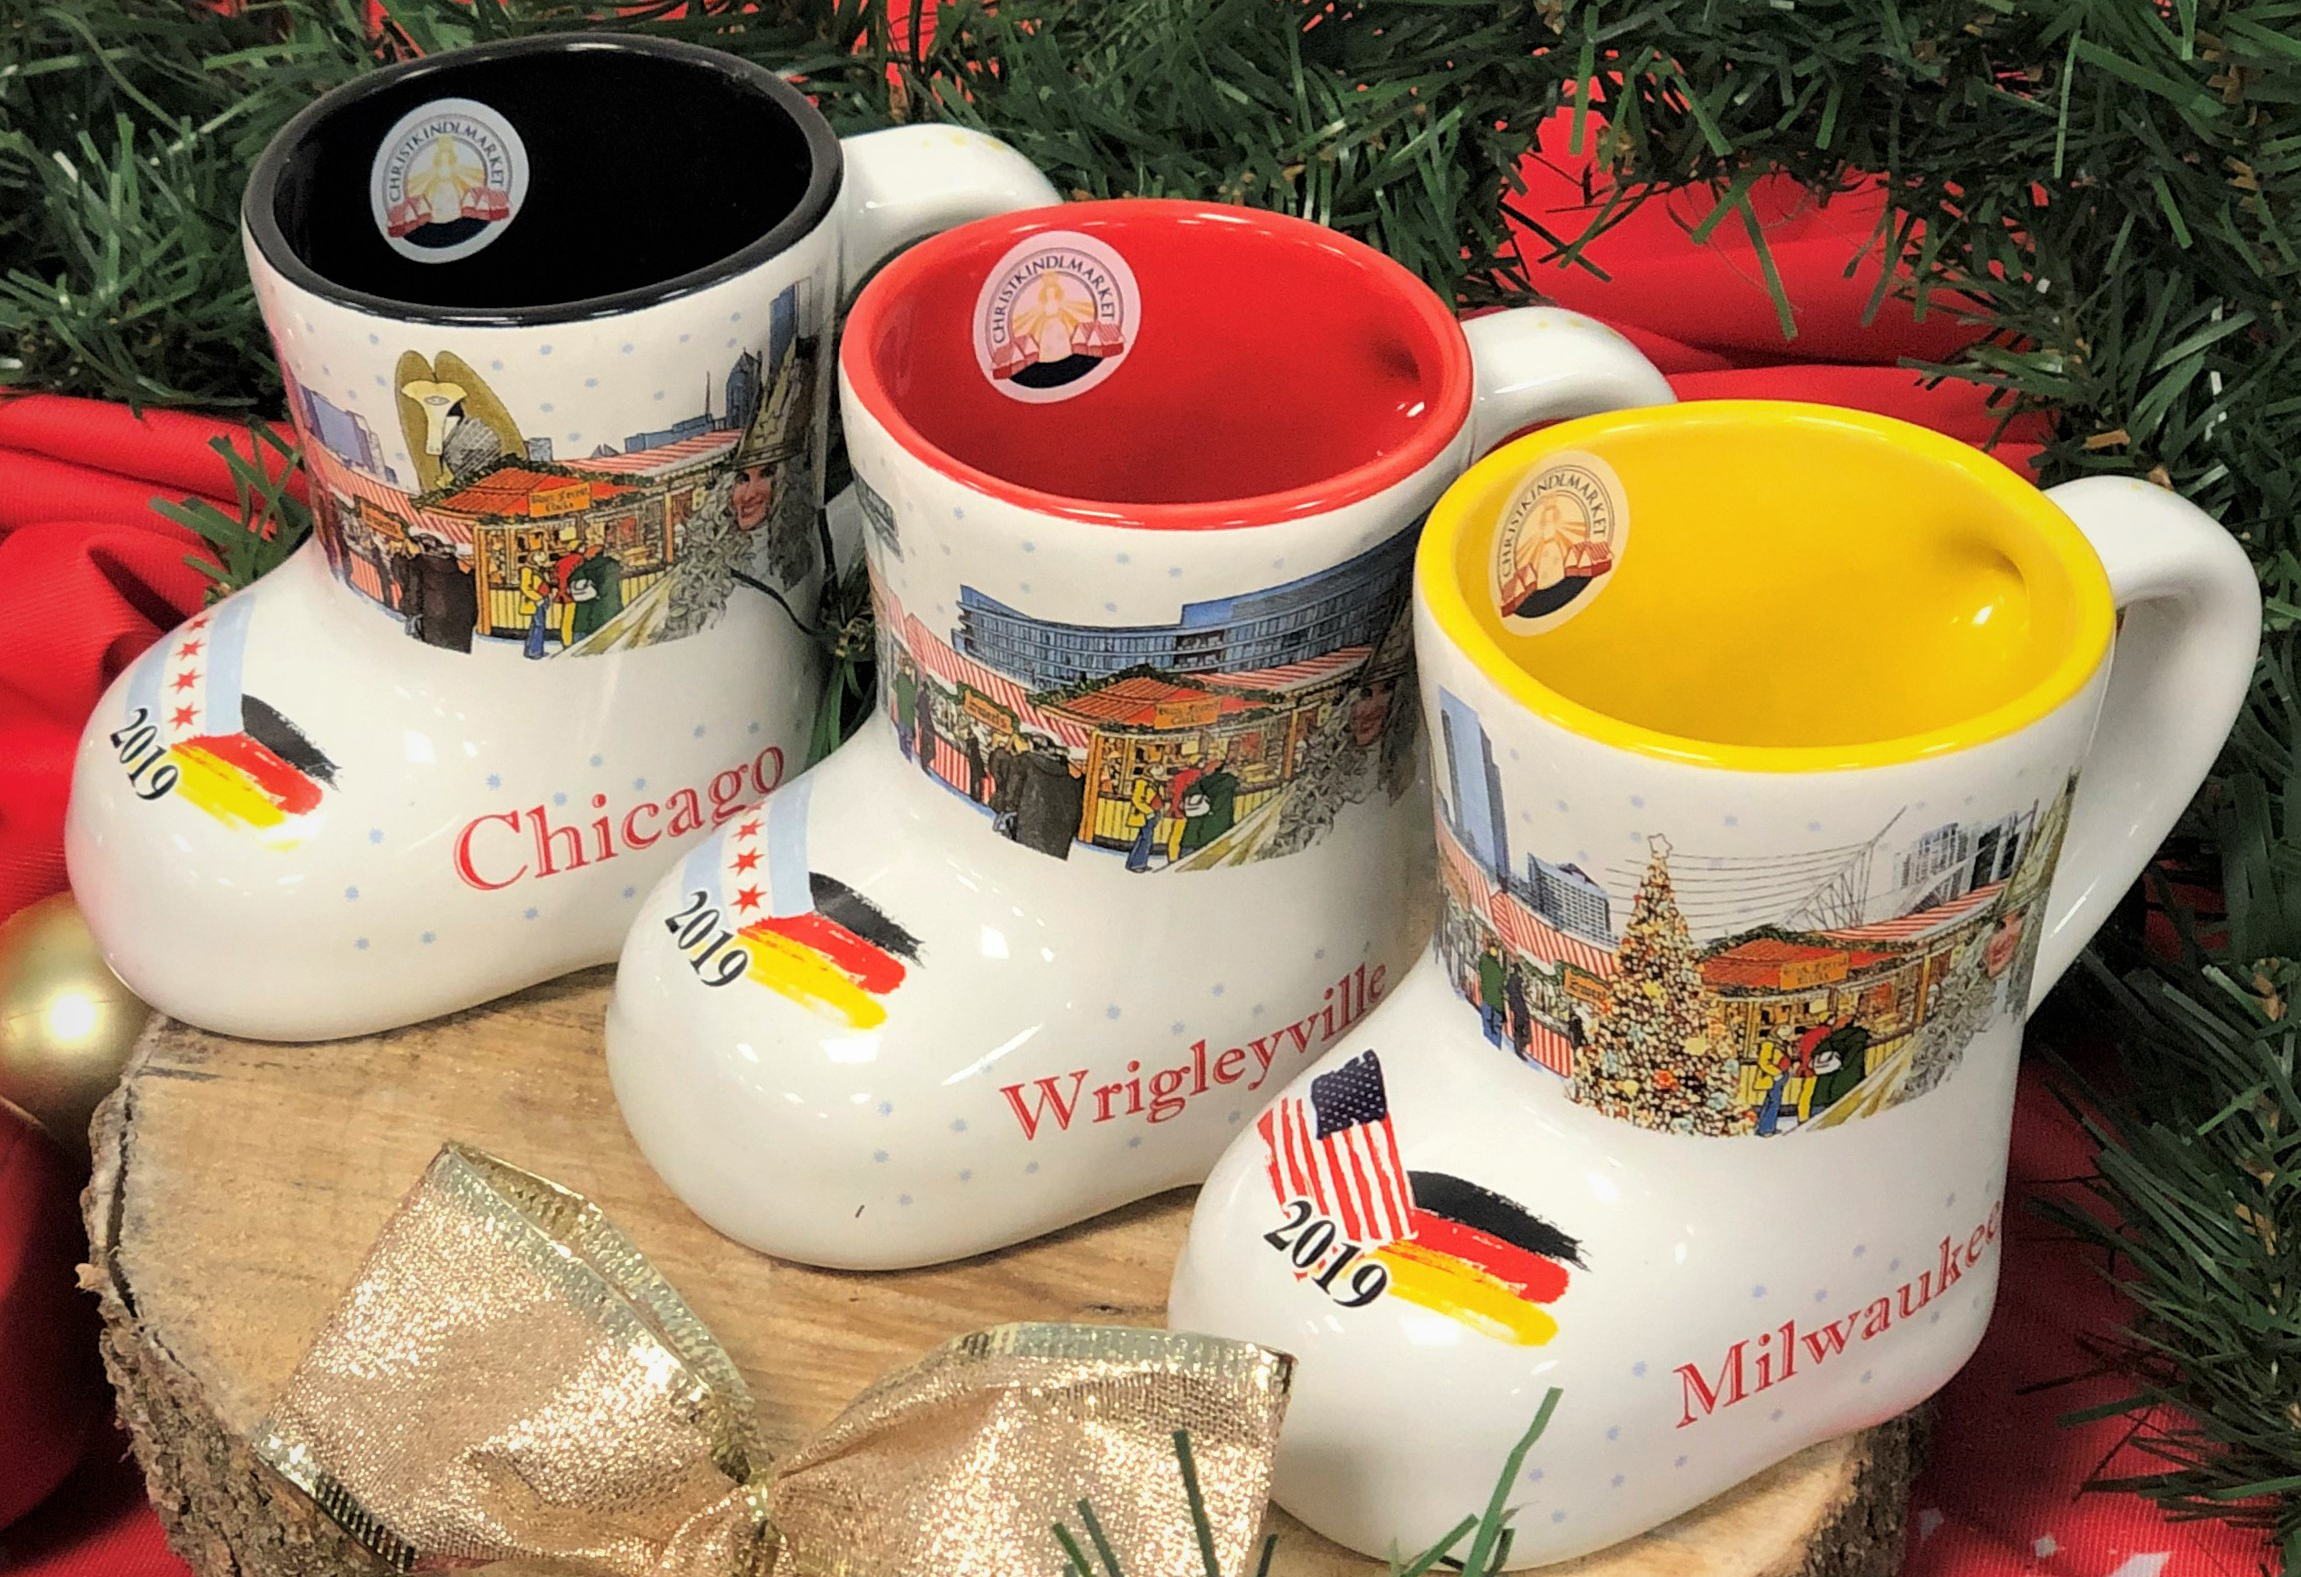 The 2019 Christkindlmarket mugs feature decorative details from Chicago, Wrigleyville or Milwaukee marketplaces.